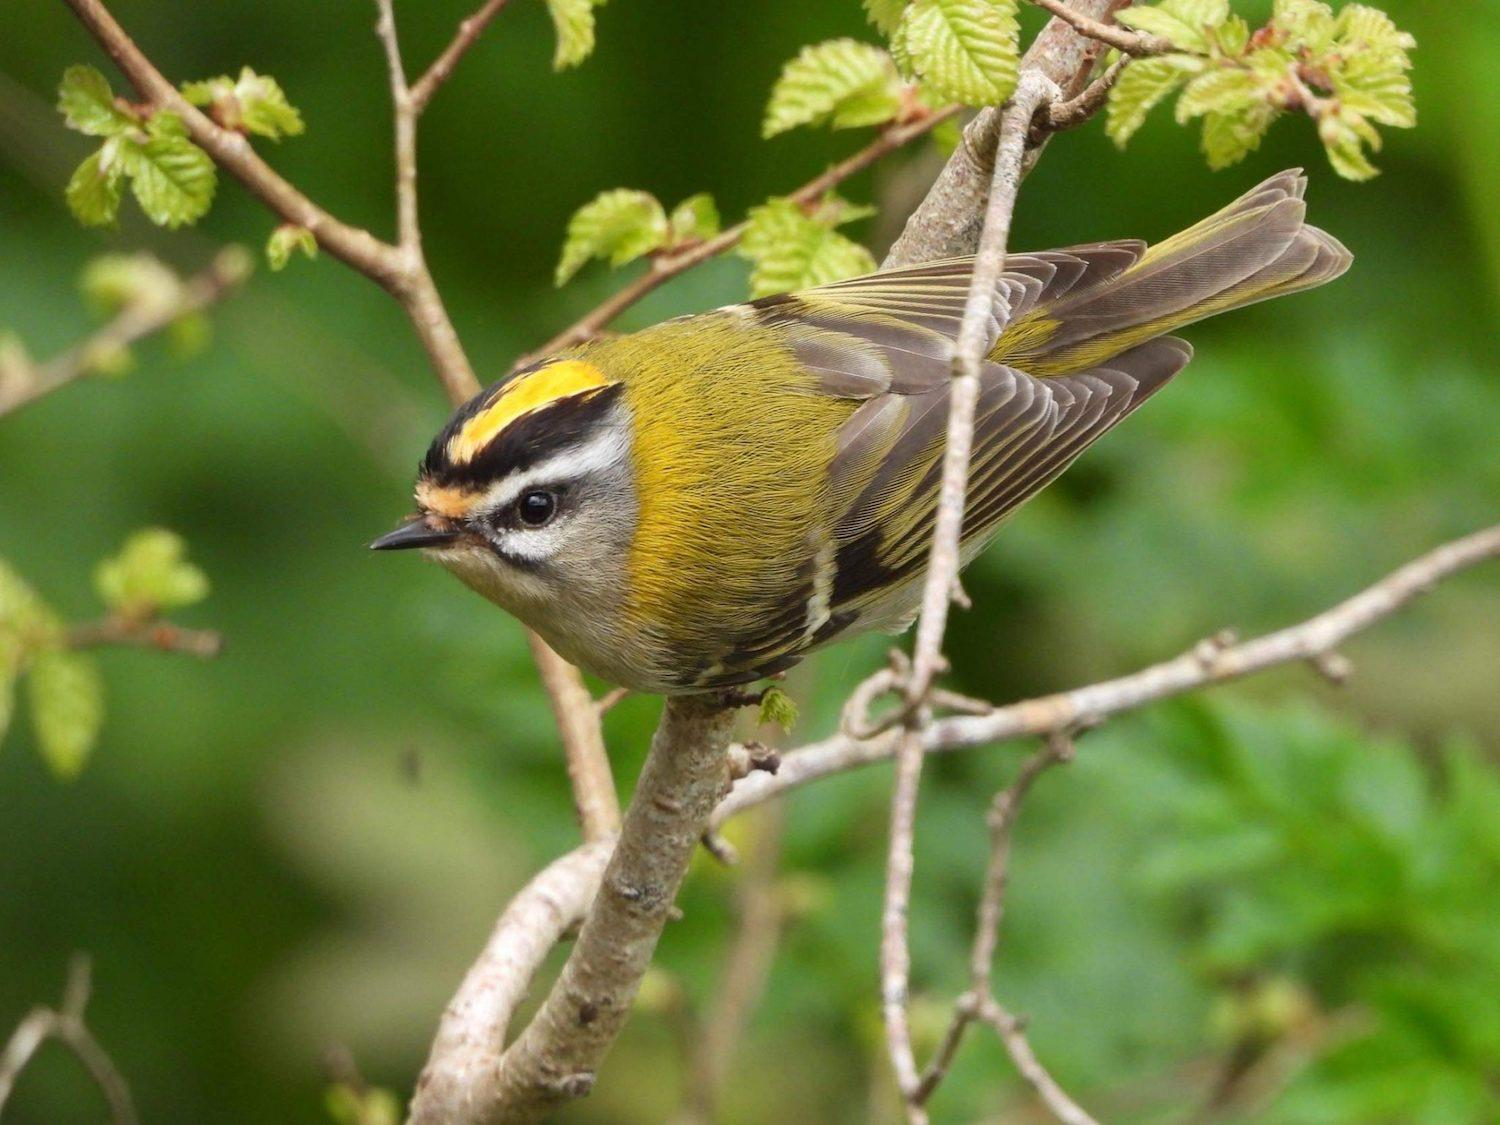 Common Firecrest by Loon67